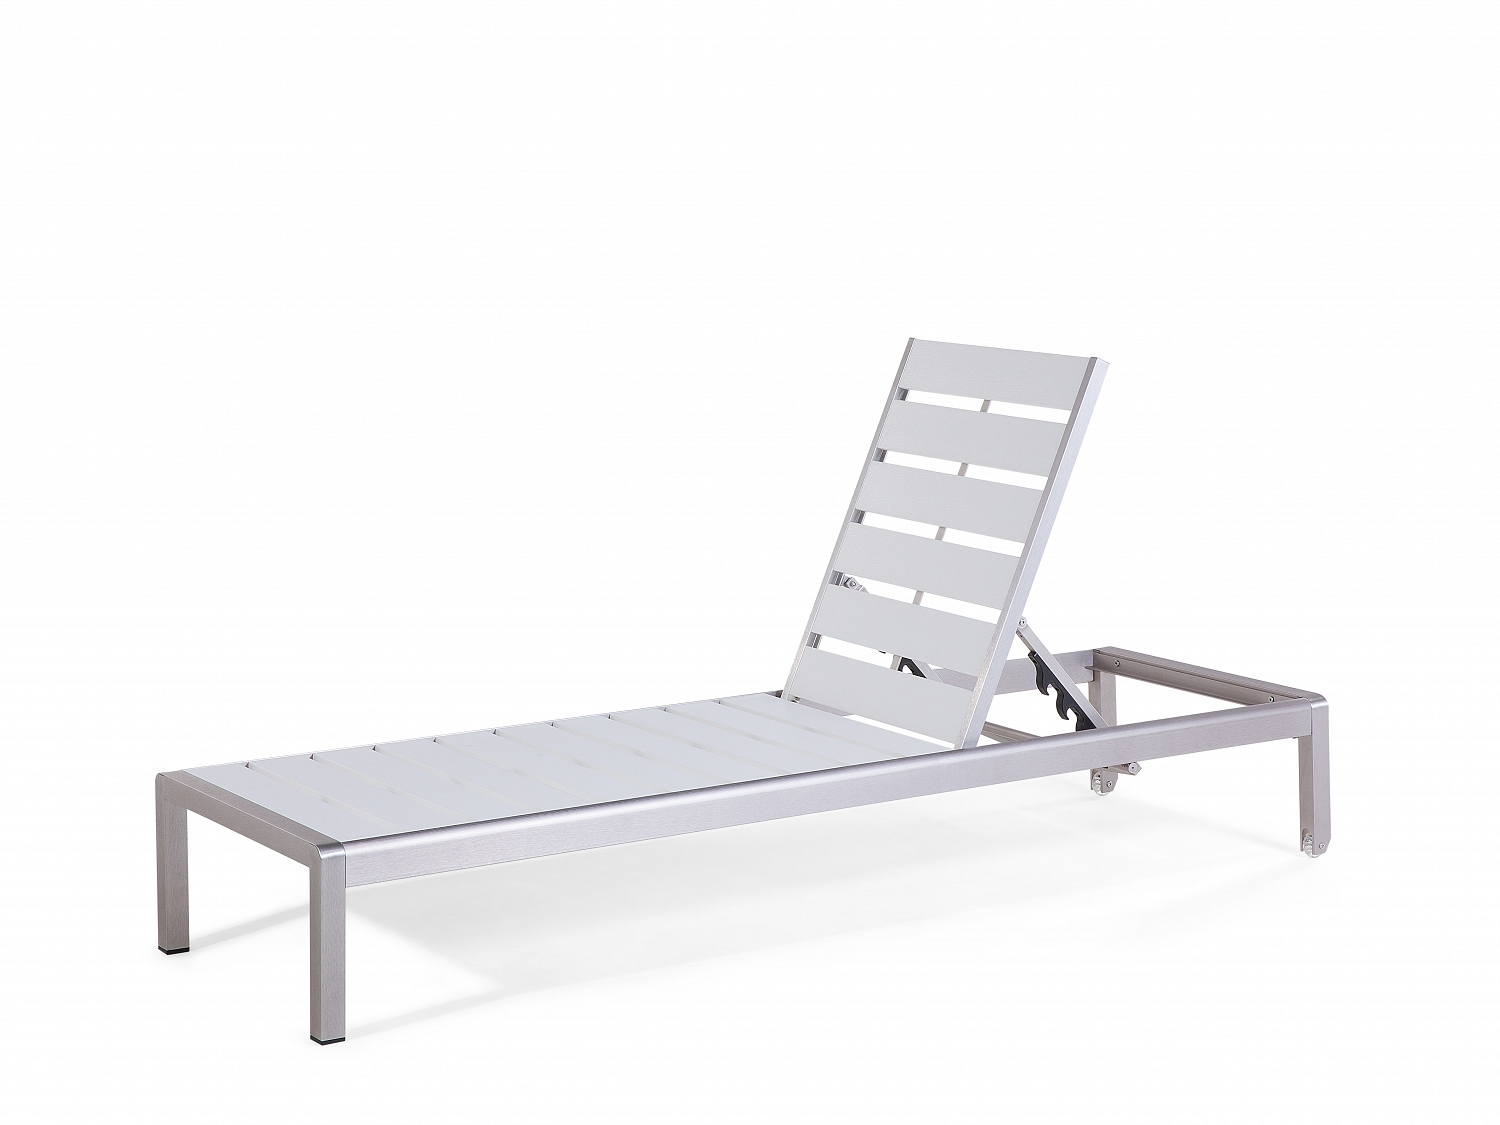 chaise longue transat aluminium transat transat jardin. Black Bedroom Furniture Sets. Home Design Ideas